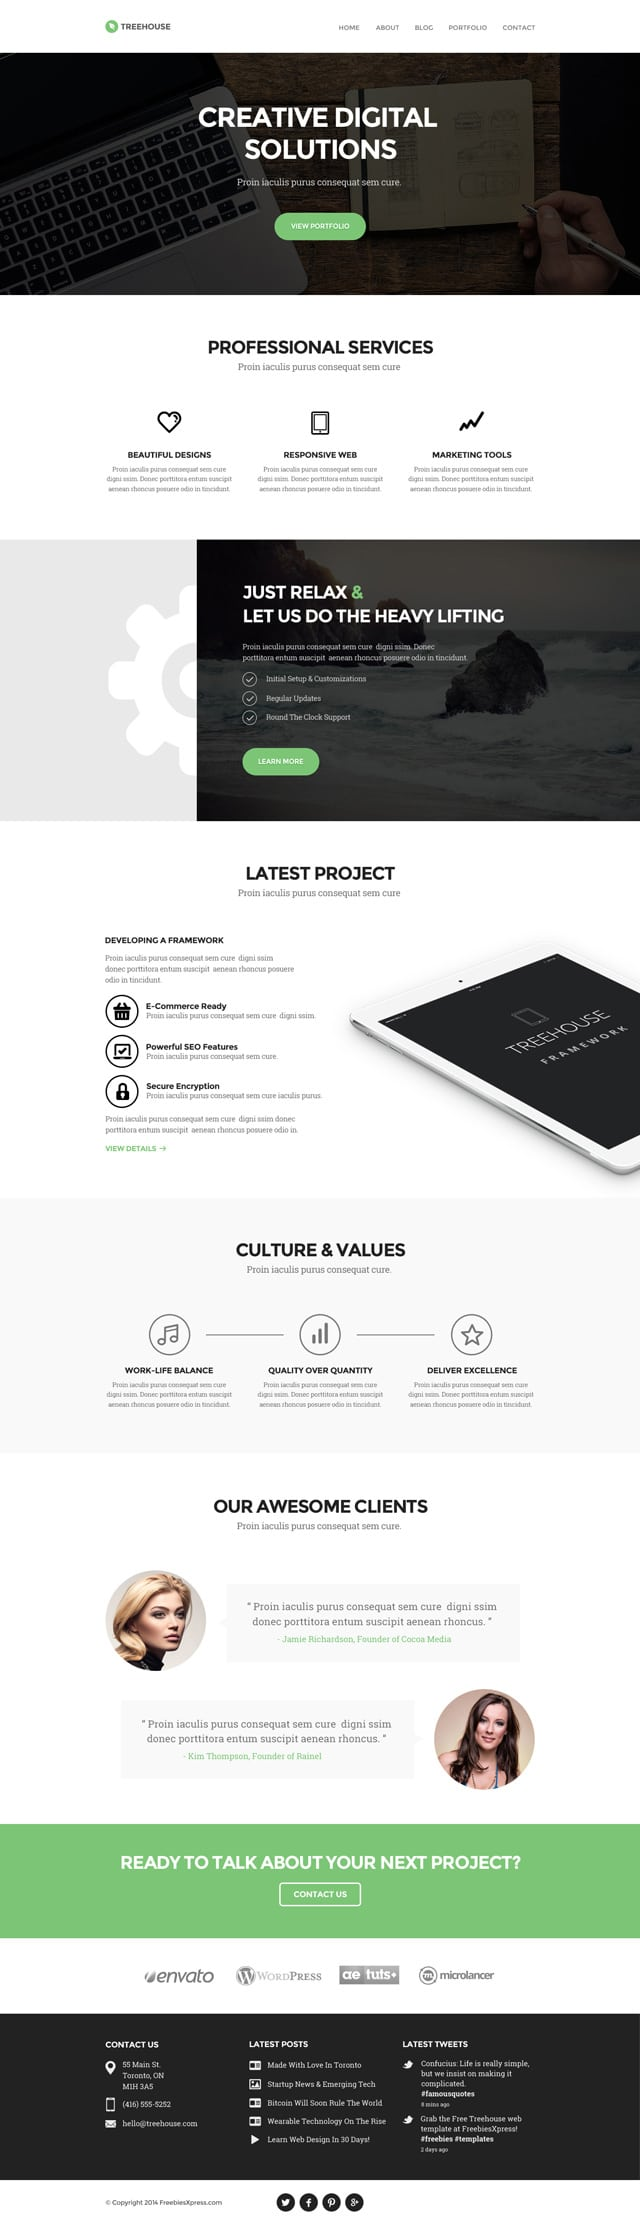 Treehouse Website PSD Template